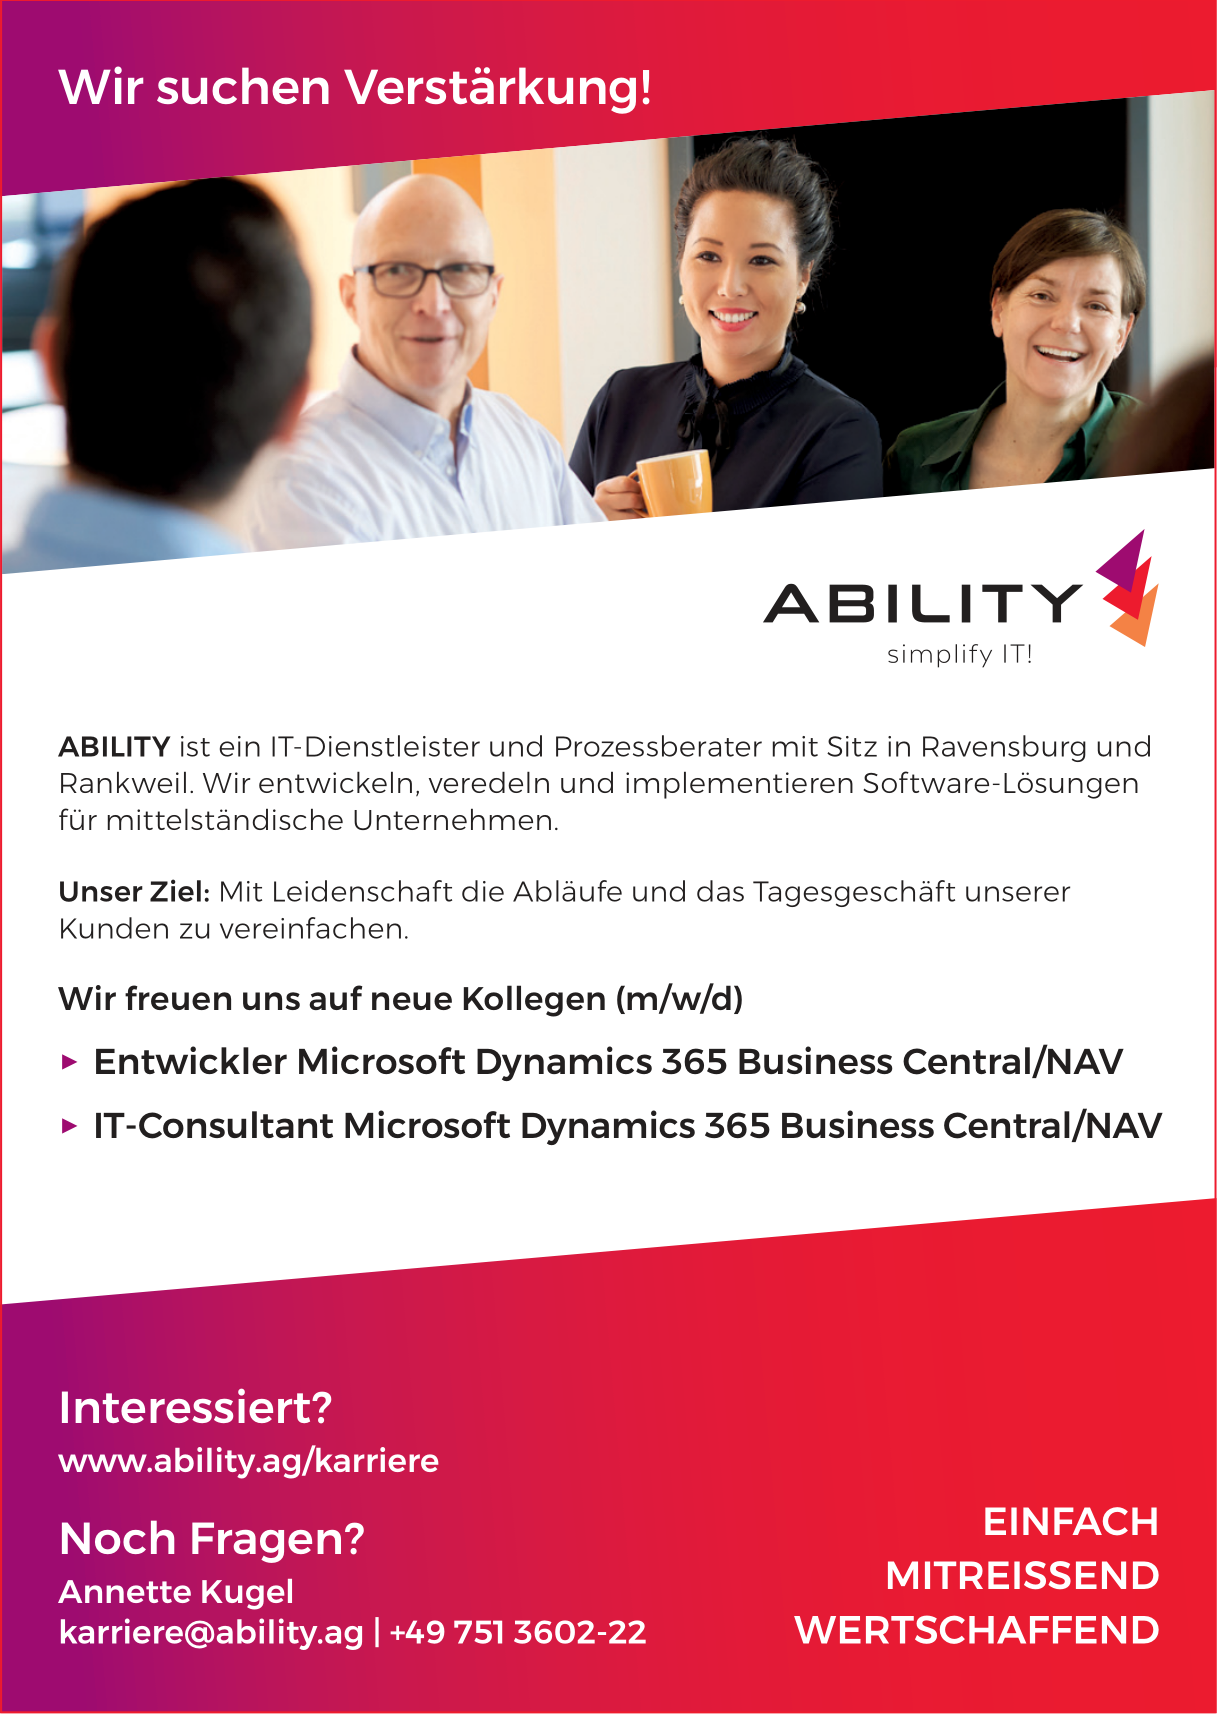 Entwickler und IT-Consultant Microsoft Dynamics 365 Business Central/NAV bei Ability